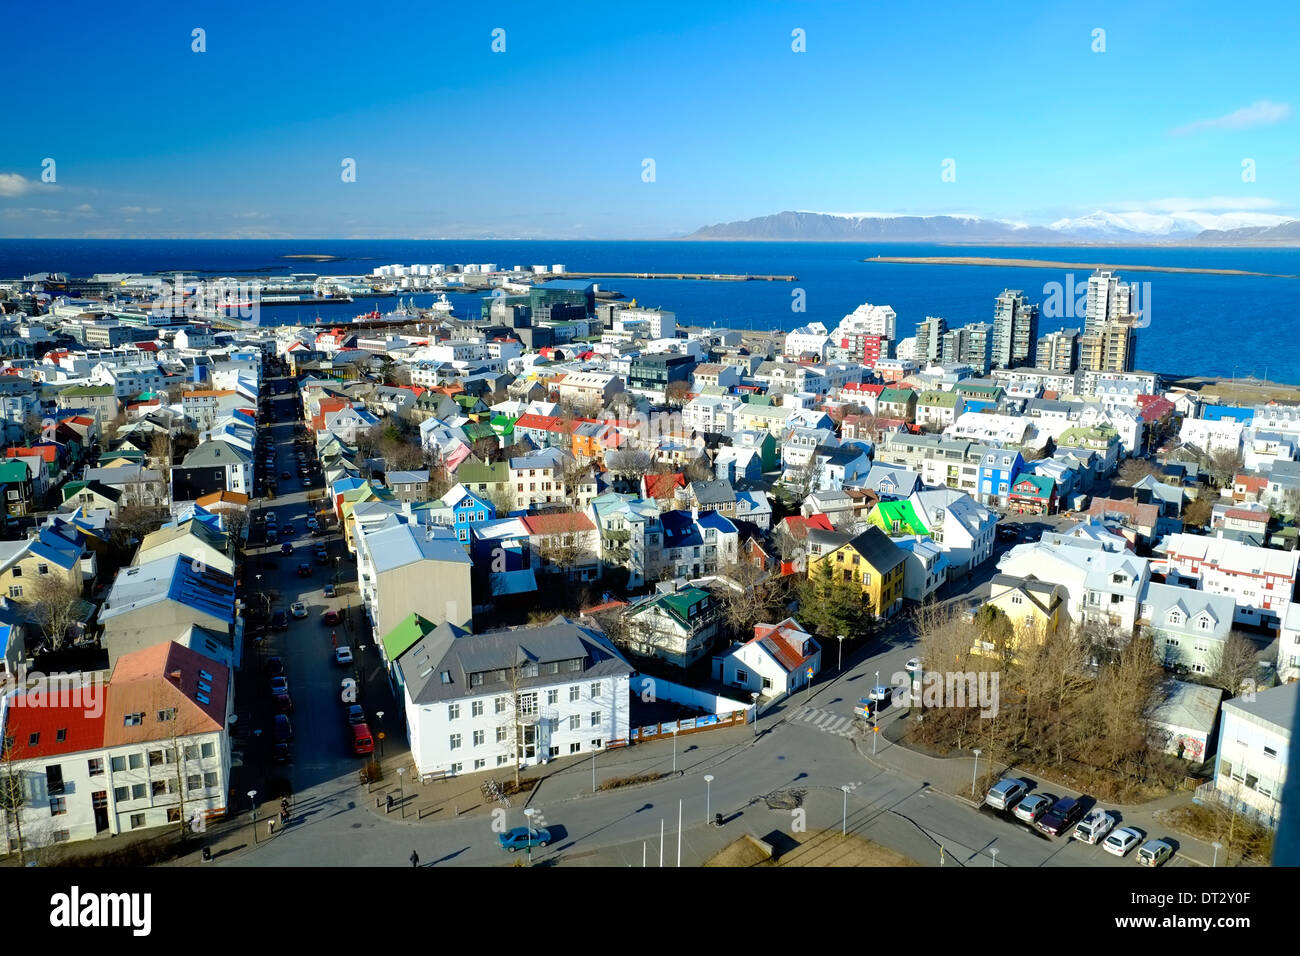 Elevated view over Reykjavic, Iceland - Stock Image